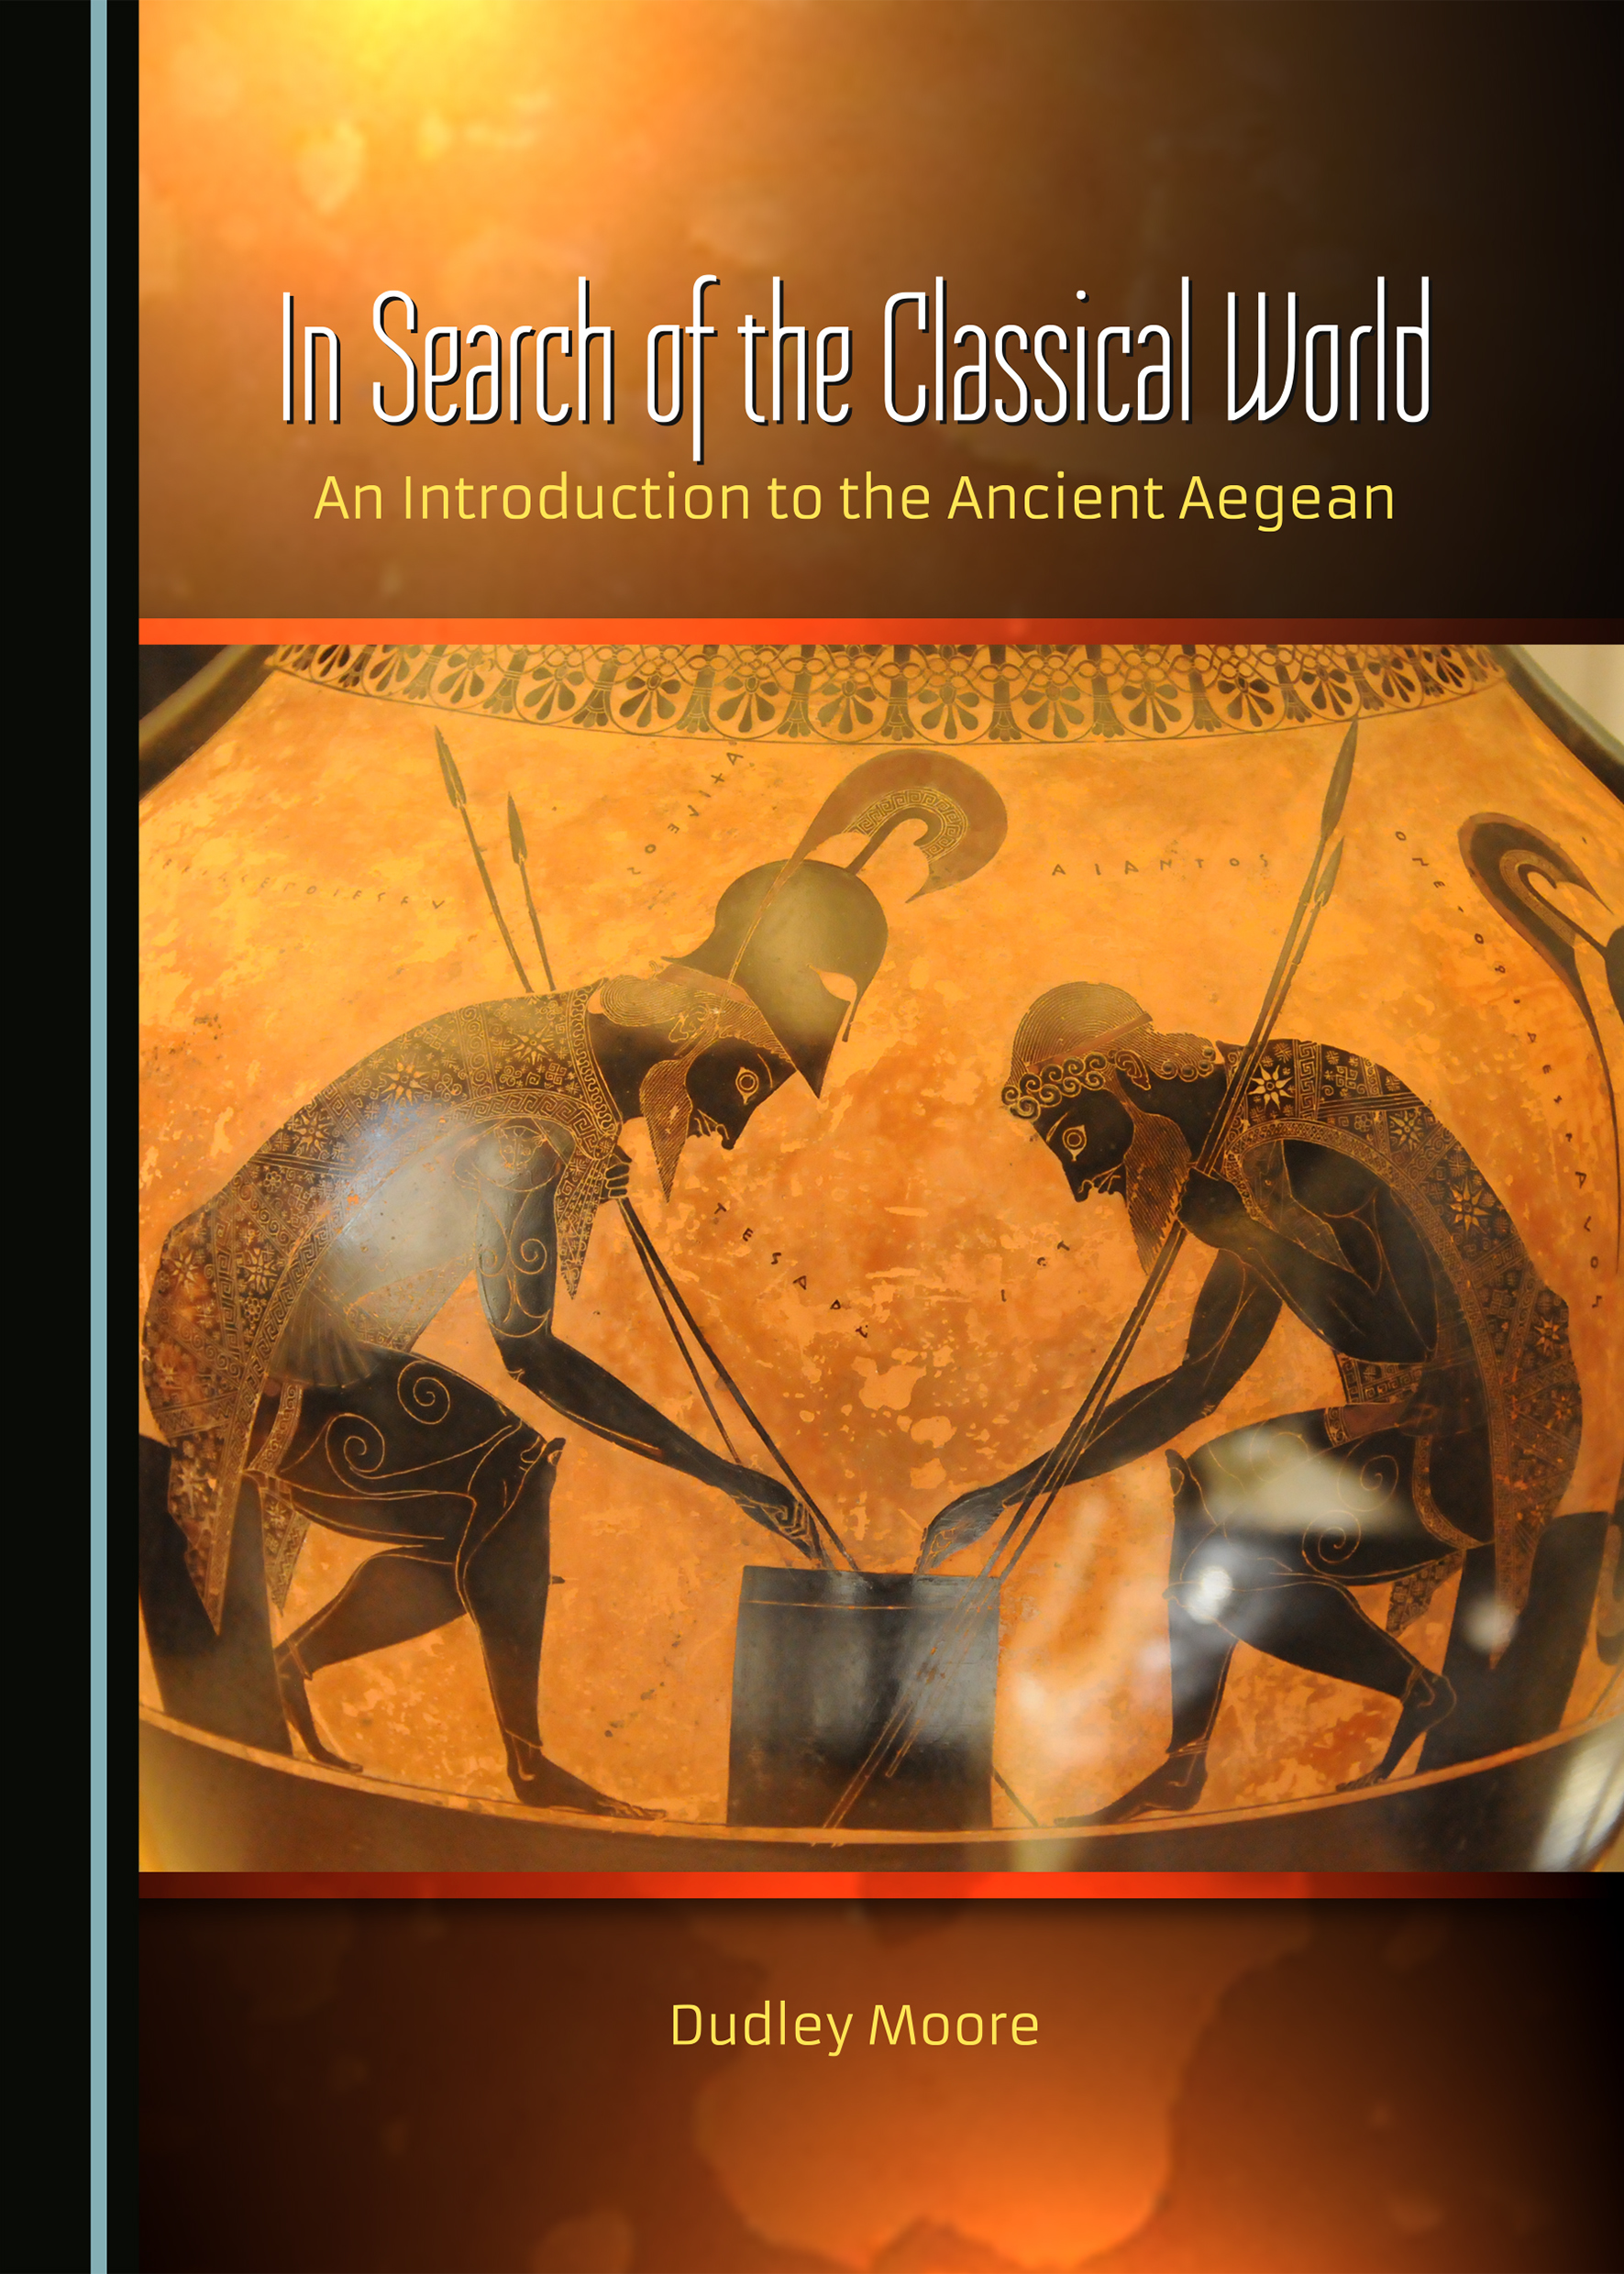 In Search of the Classical World: An Introduction to the Ancient Aegean